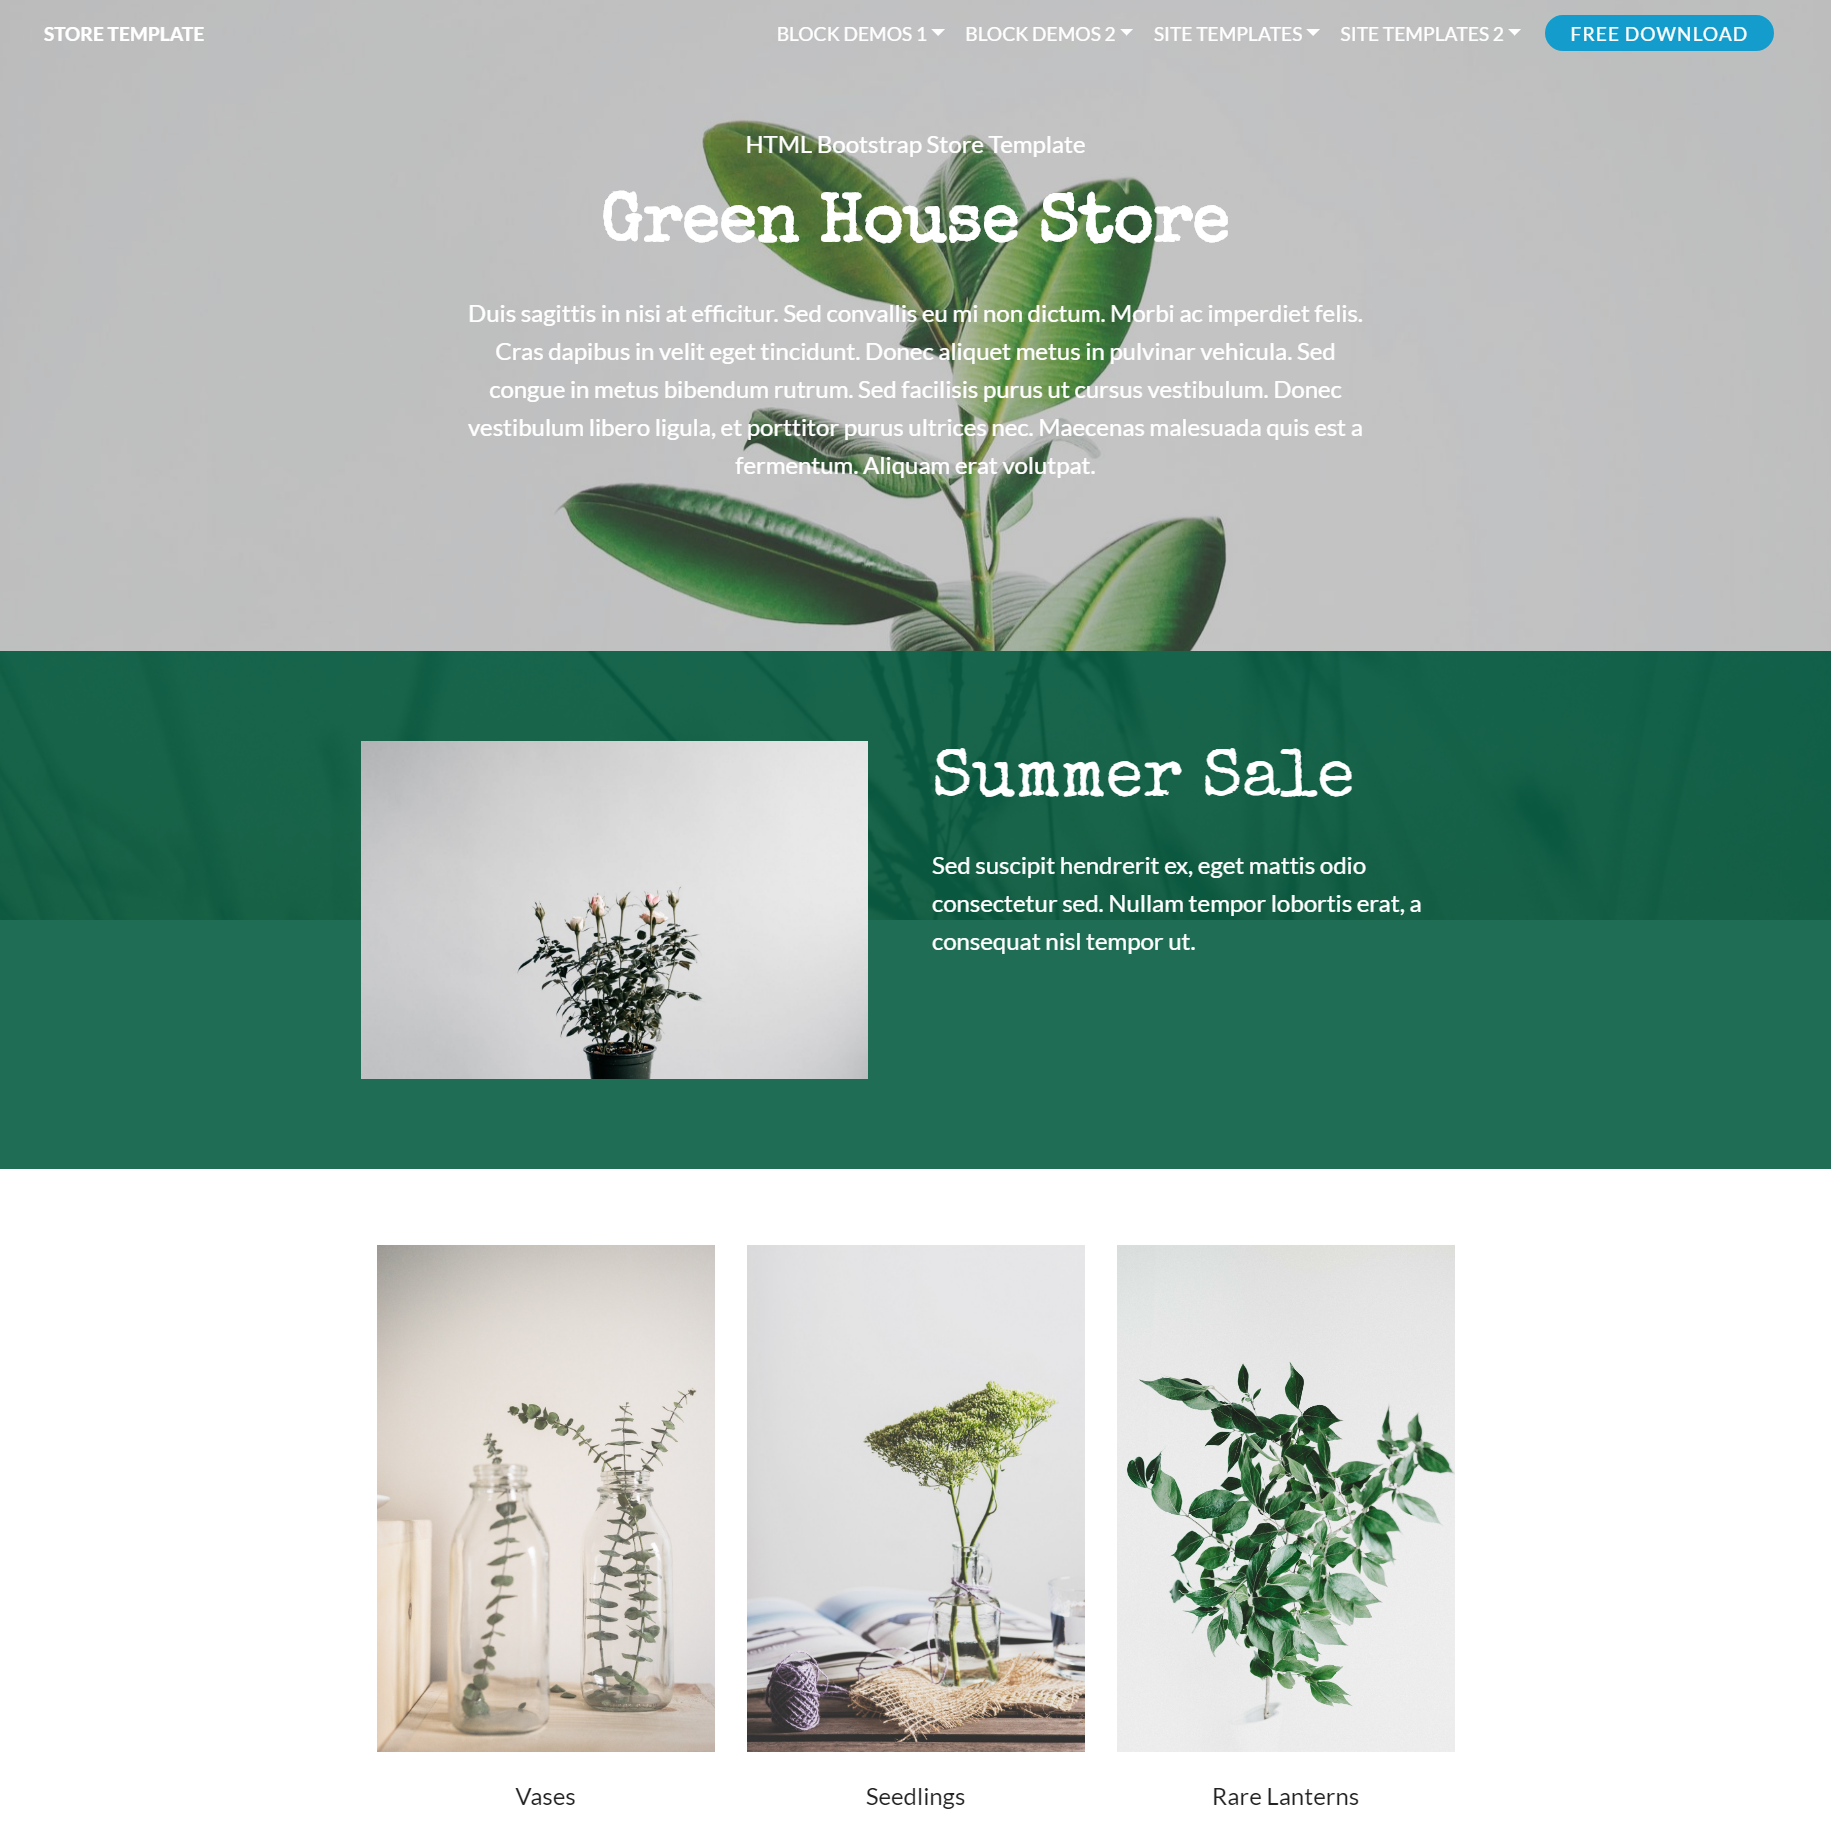 Free Bootstrap Store Templates